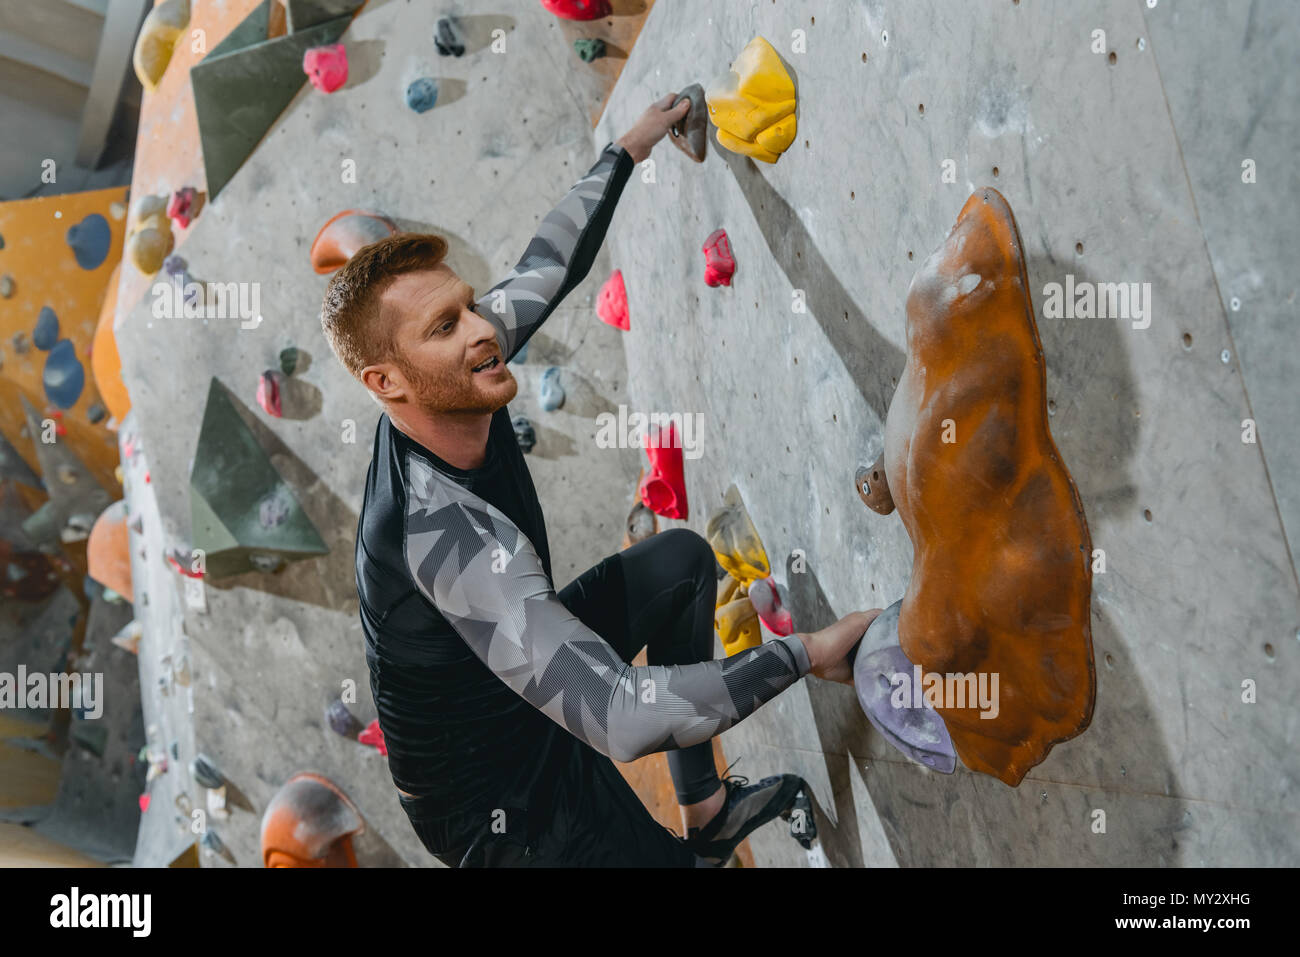 Young man in sportive attire climbing a wall with grips at gym - Stock Image